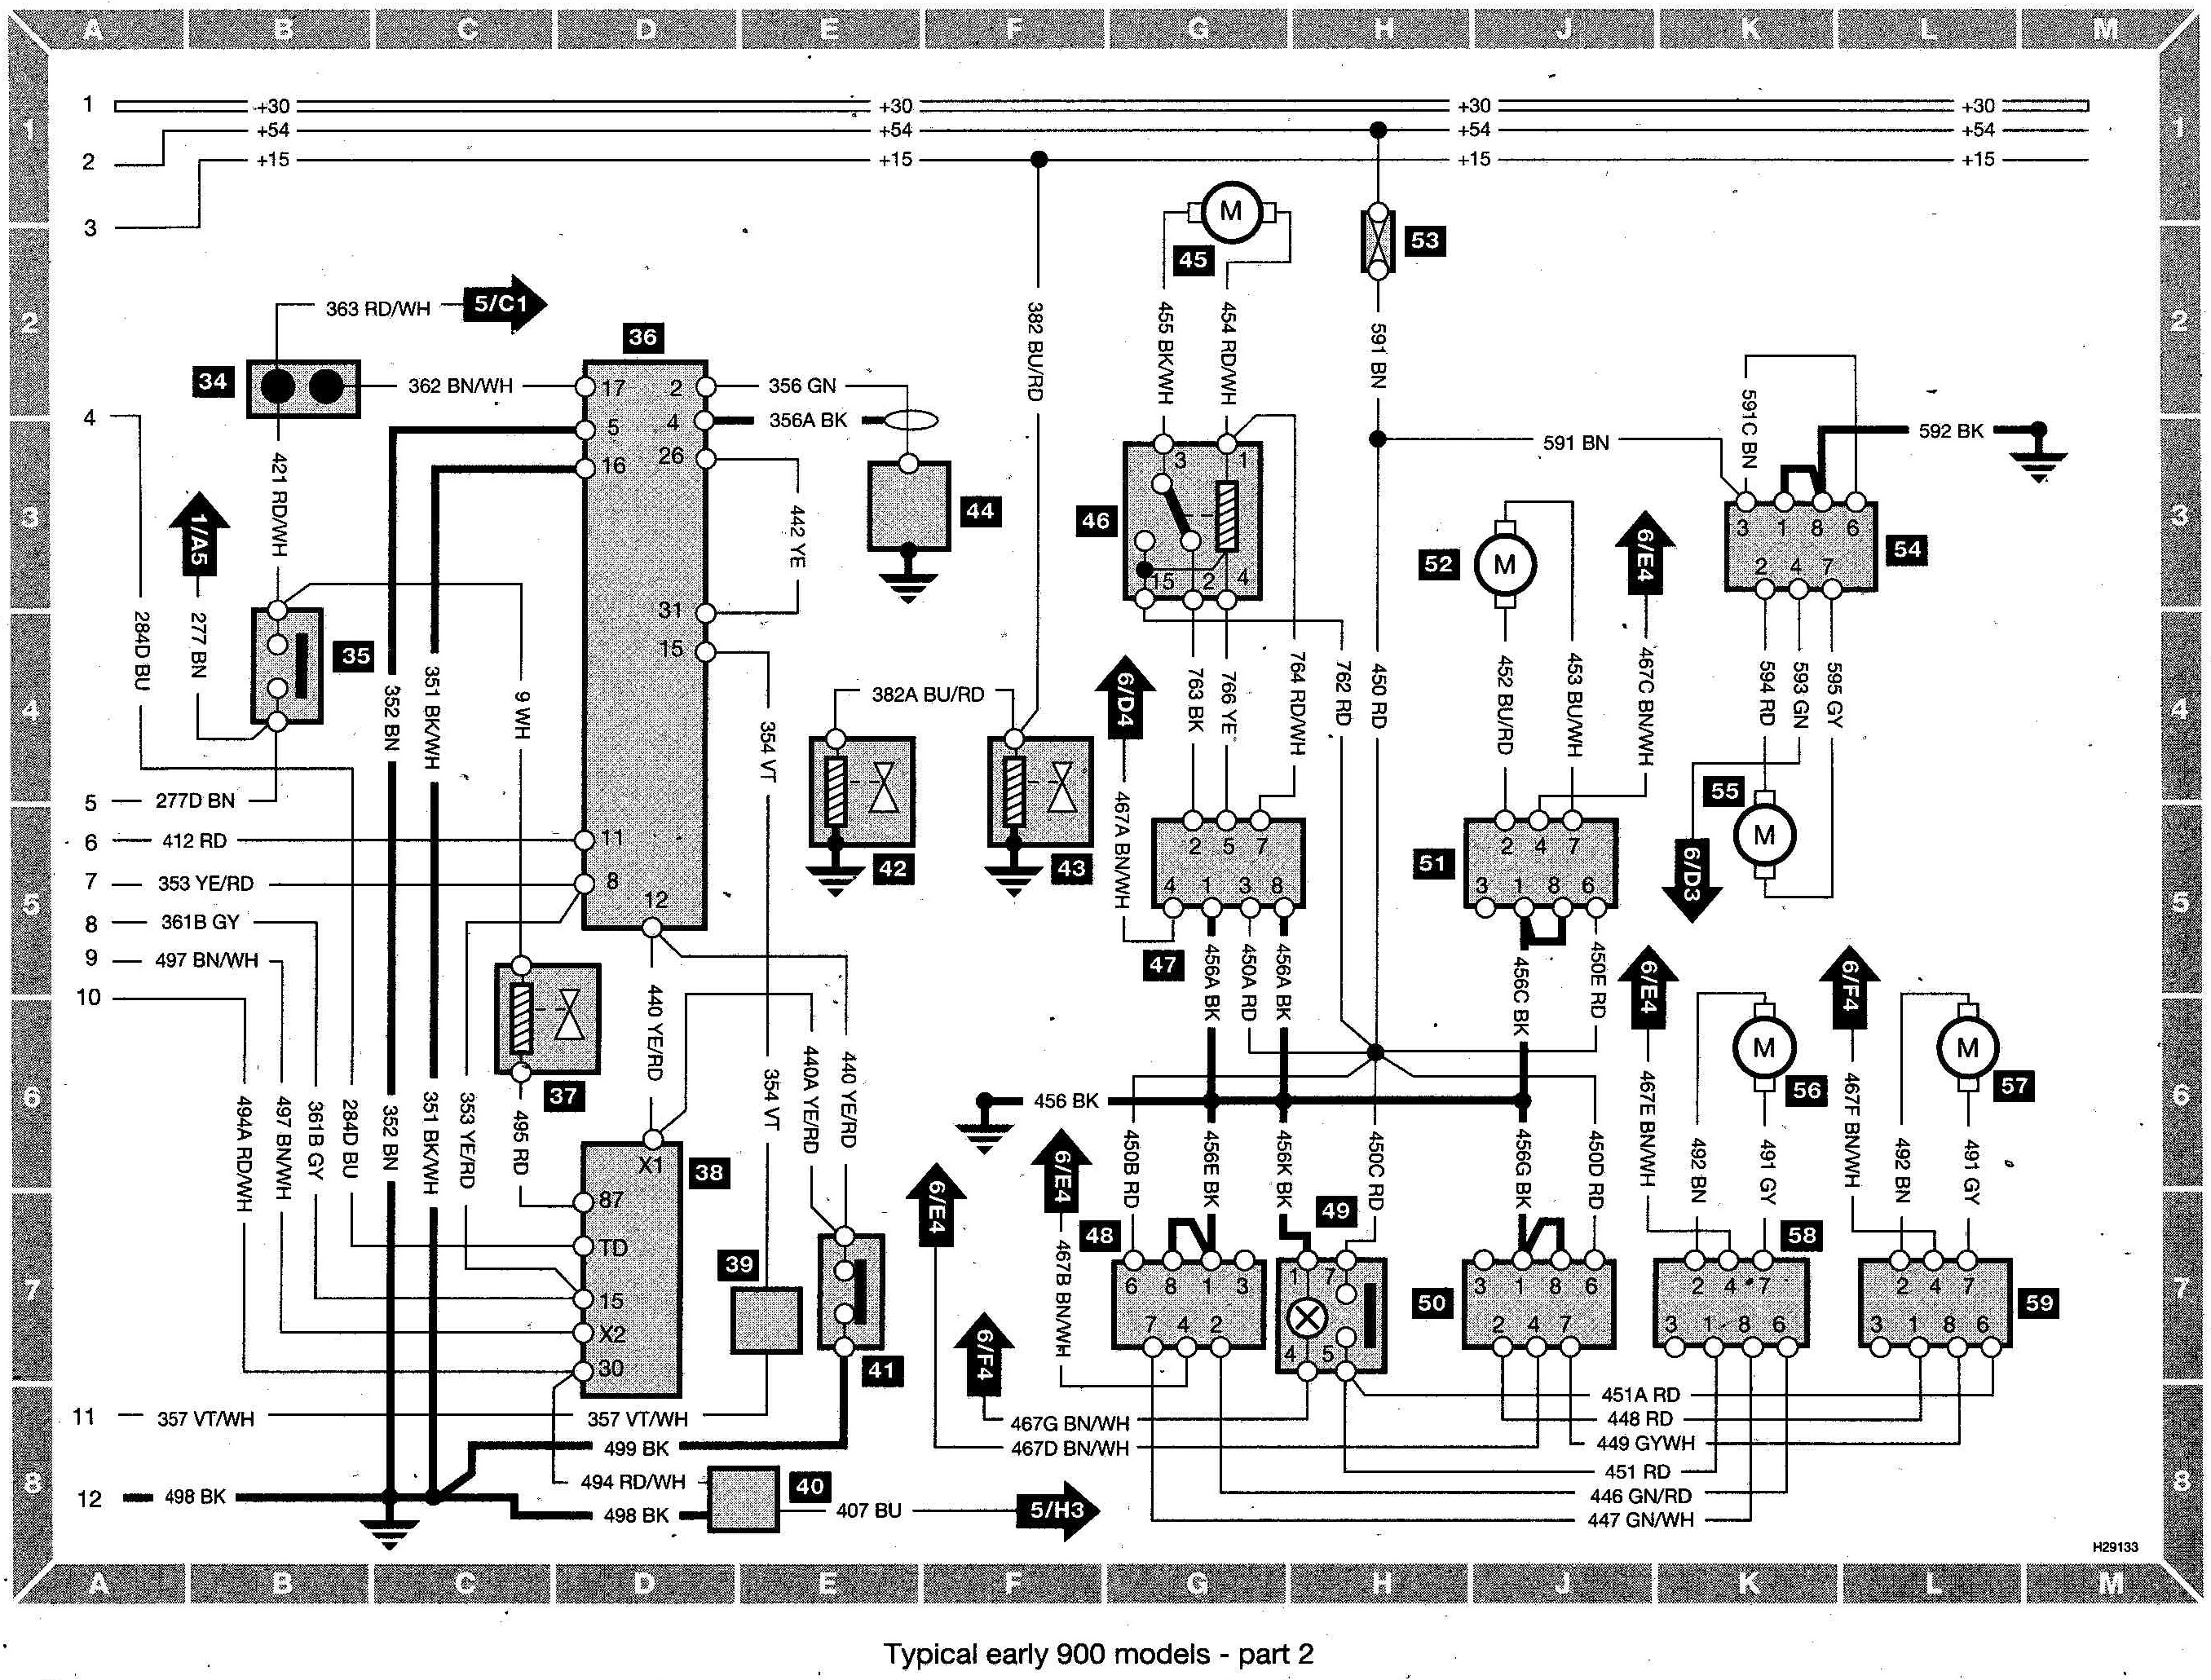 Saab 9 3 2003 Front Headlight Wiring Diagram likewise 2003 Saab 9 3 Belt Routing furthermore P 0900c152800ad957 together with Byte Av Turbo in addition Saab 9 5 Wiring Diagram. on 2006 saab 9 3